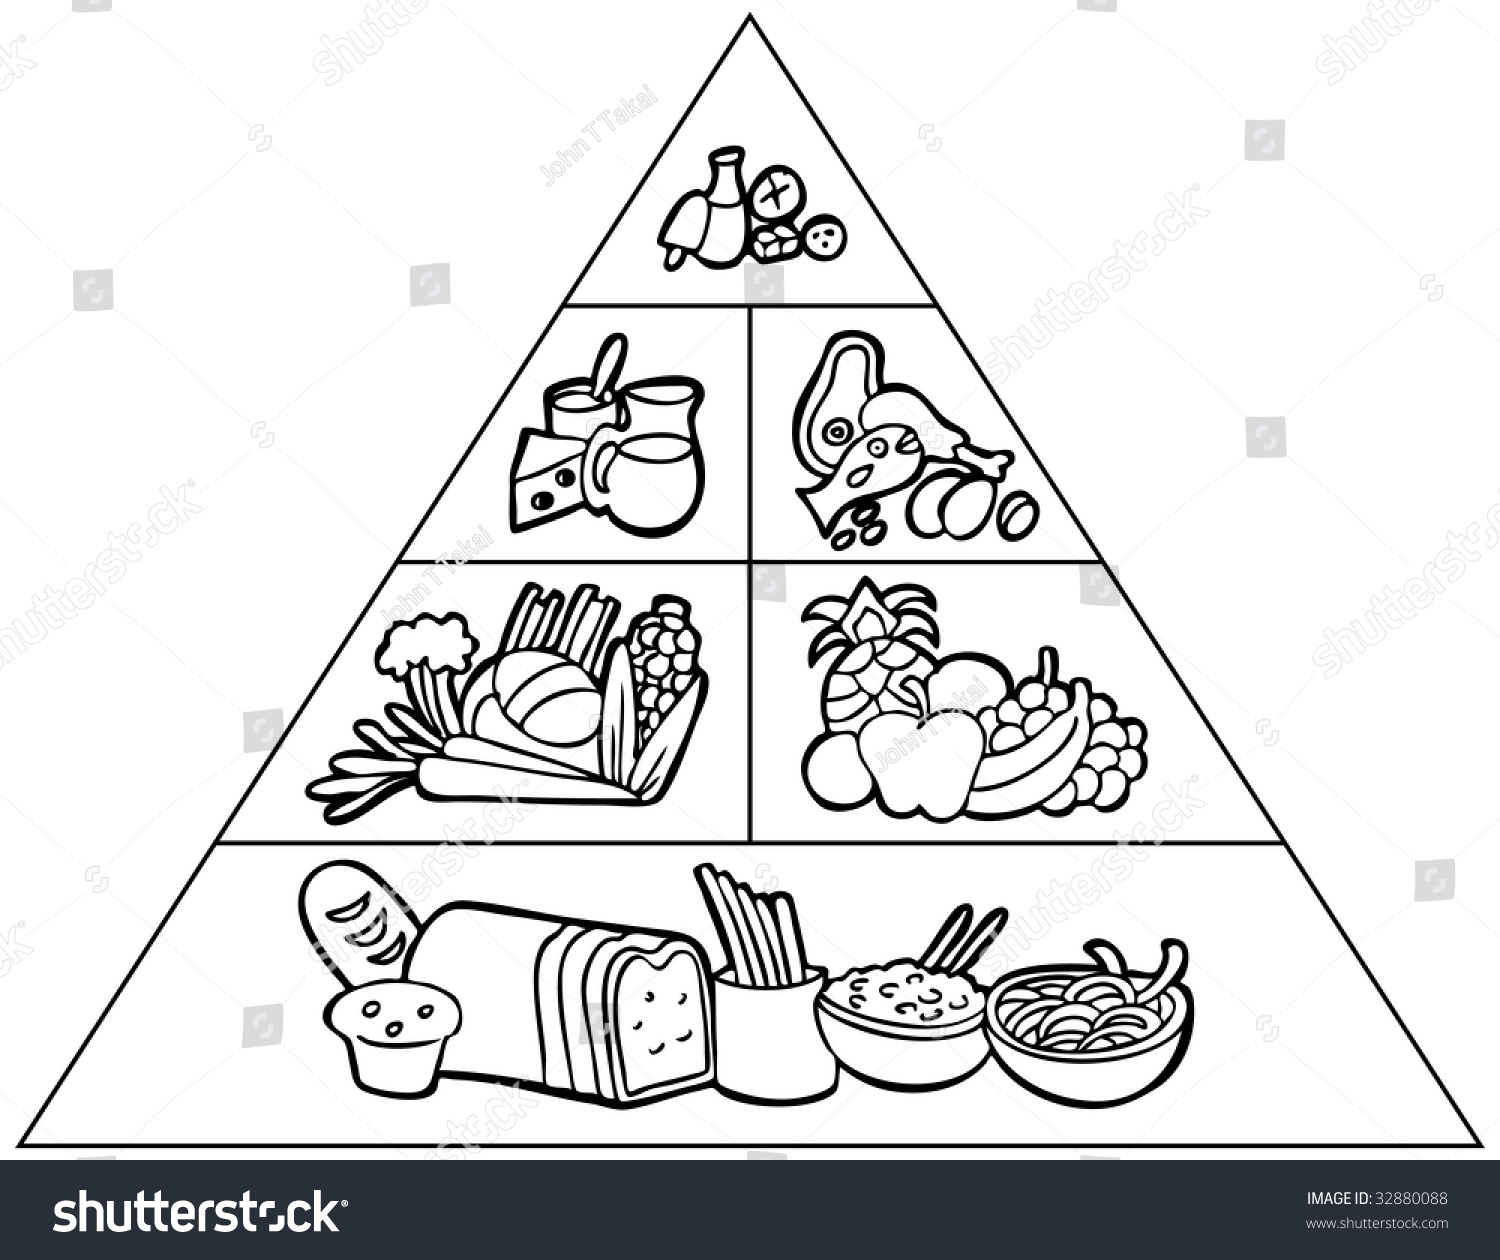 Cartoon Food Pyramid Line Art Stock Illustration